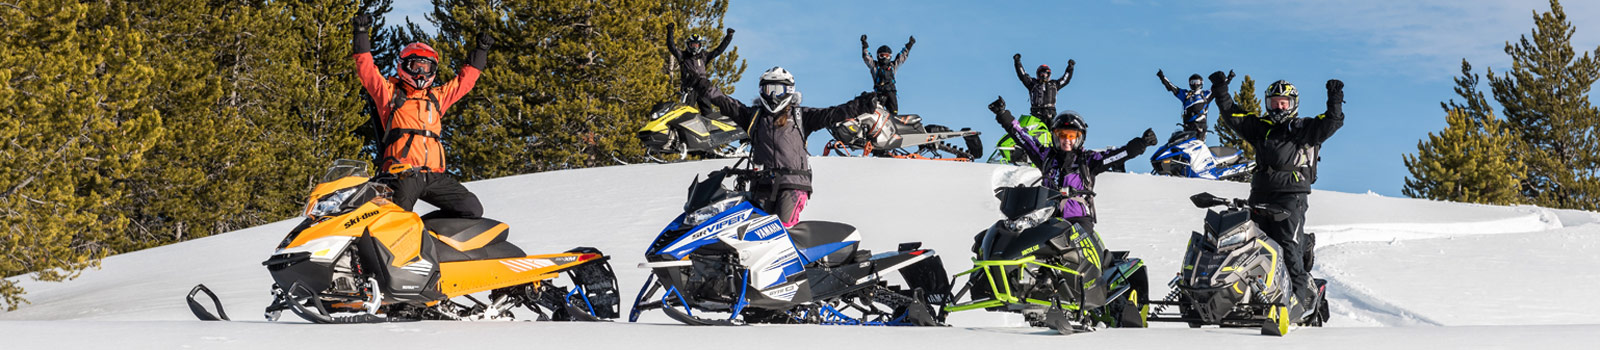 Snowmobilers having fun